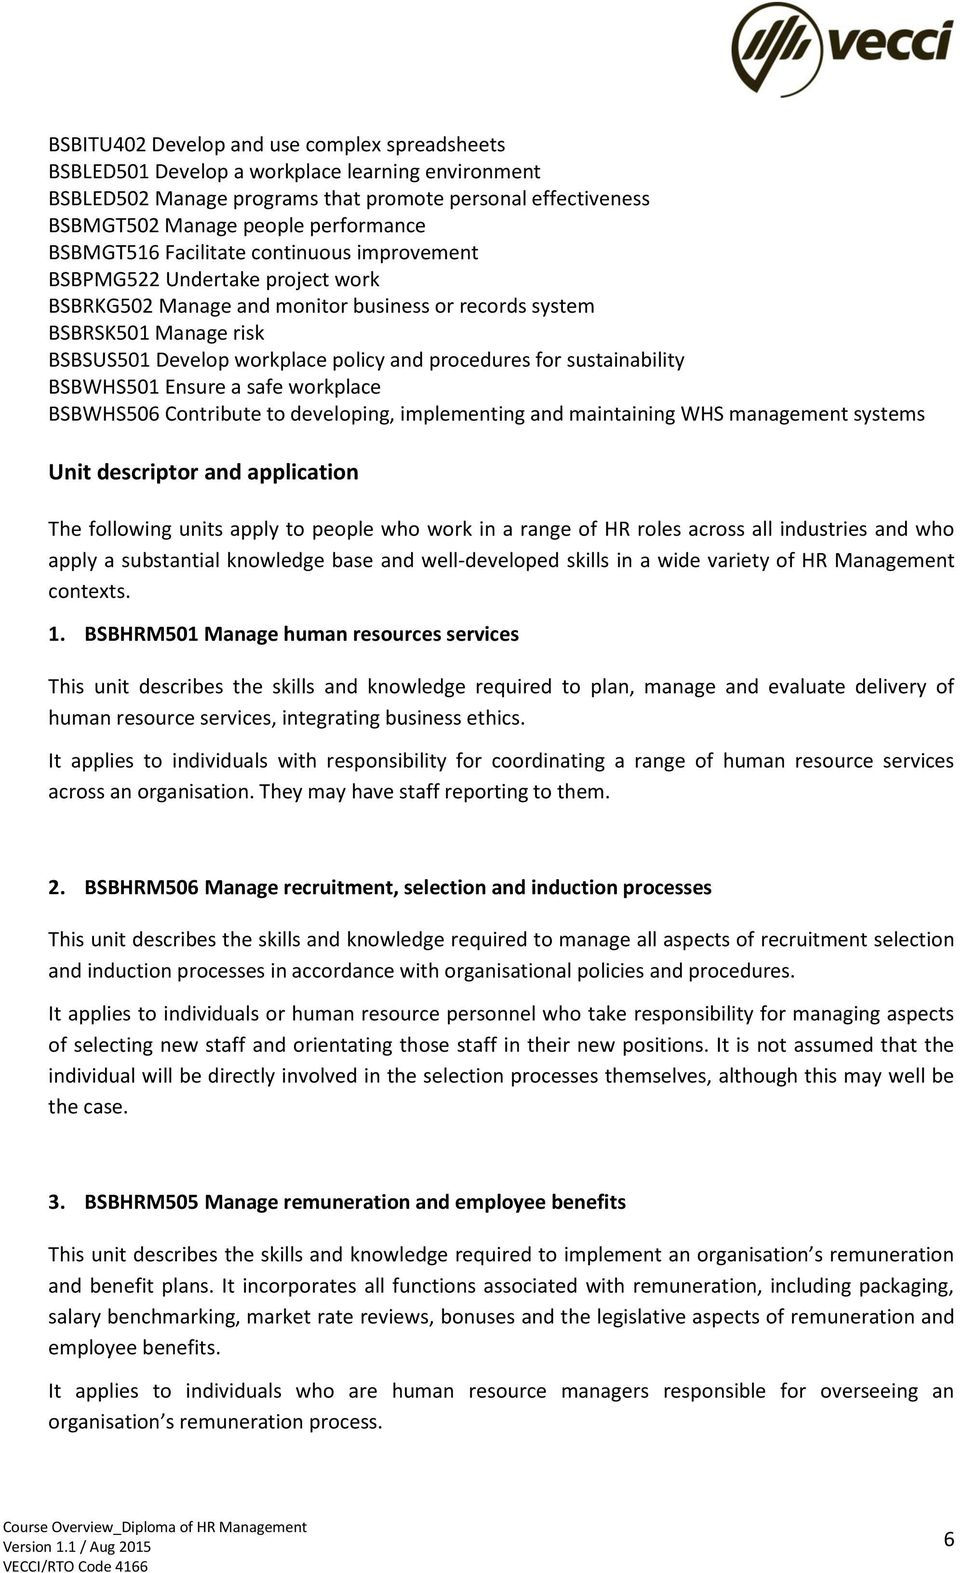 procedures for sustainability BSBWHS501 nsure a safe workplace BSBWHS506 Contribute to developing, implementing and maintaining WHS management systems Unit descriptor and application The following